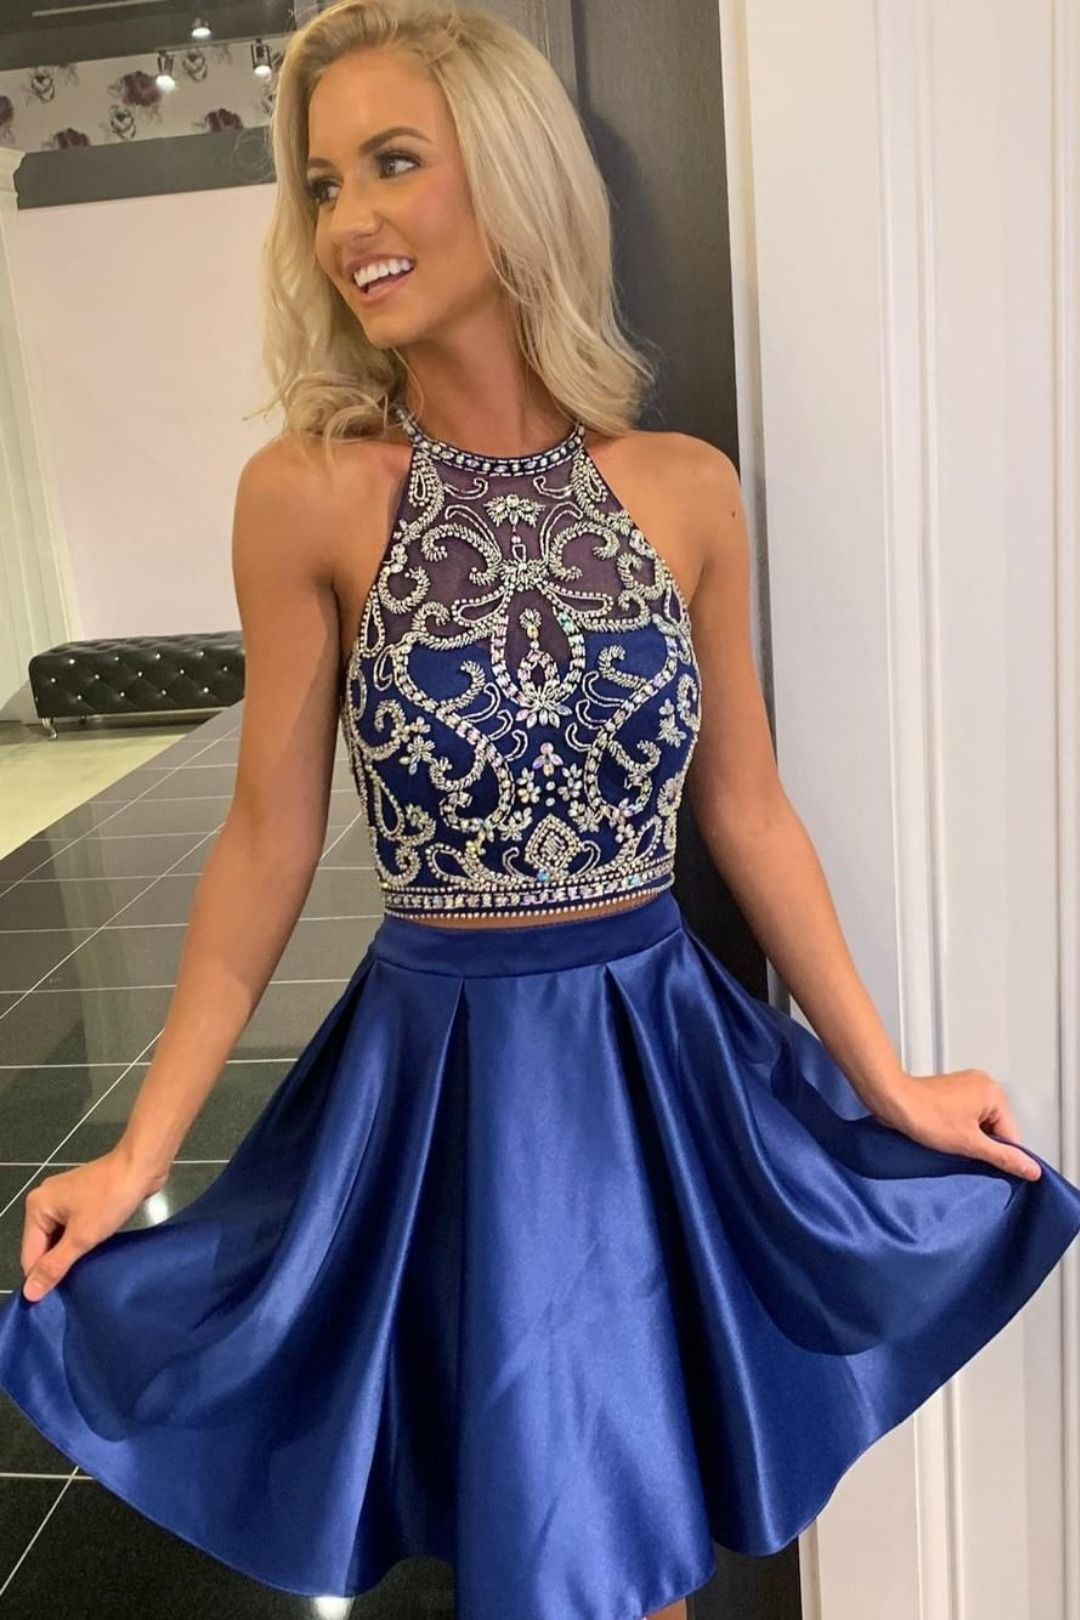 Homecoming2019 Partydresses Homecoming Navyblue Dresses Beaded Short Dress Piece Wi Piece Prom Dress Blue Homecoming Dresses Homecoming Dresses Short [ 1620 x 1080 Pixel ]